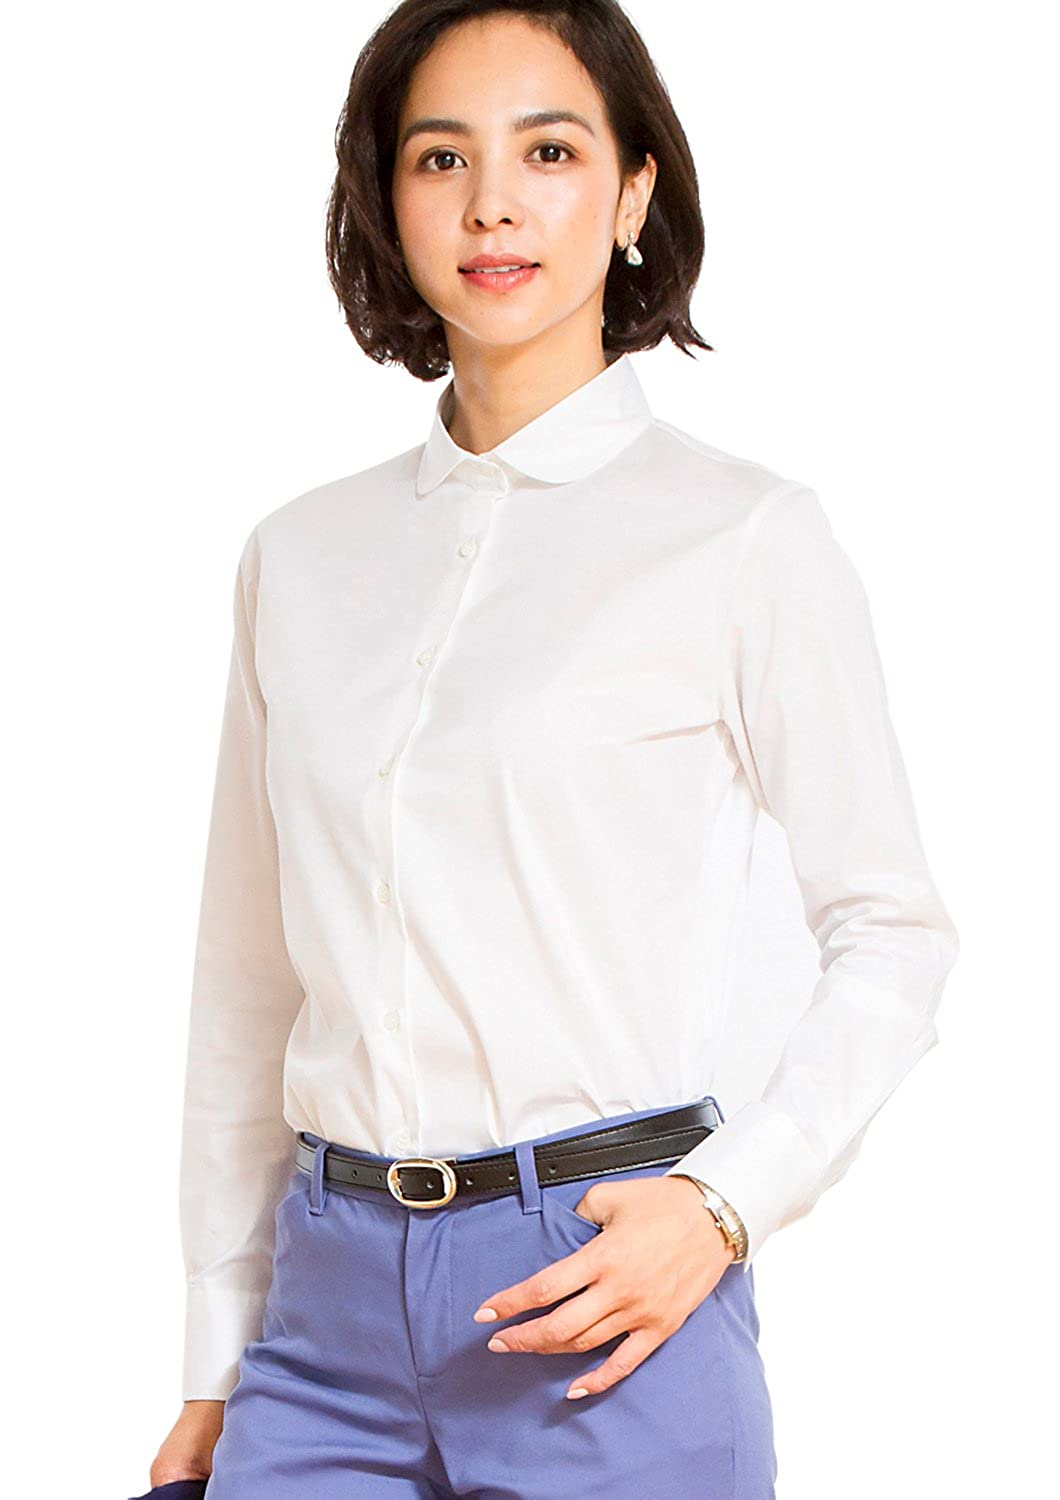 LEONIS Women's Premium Stretch & Easy Care Rounded-point Long Sleeve Shirt